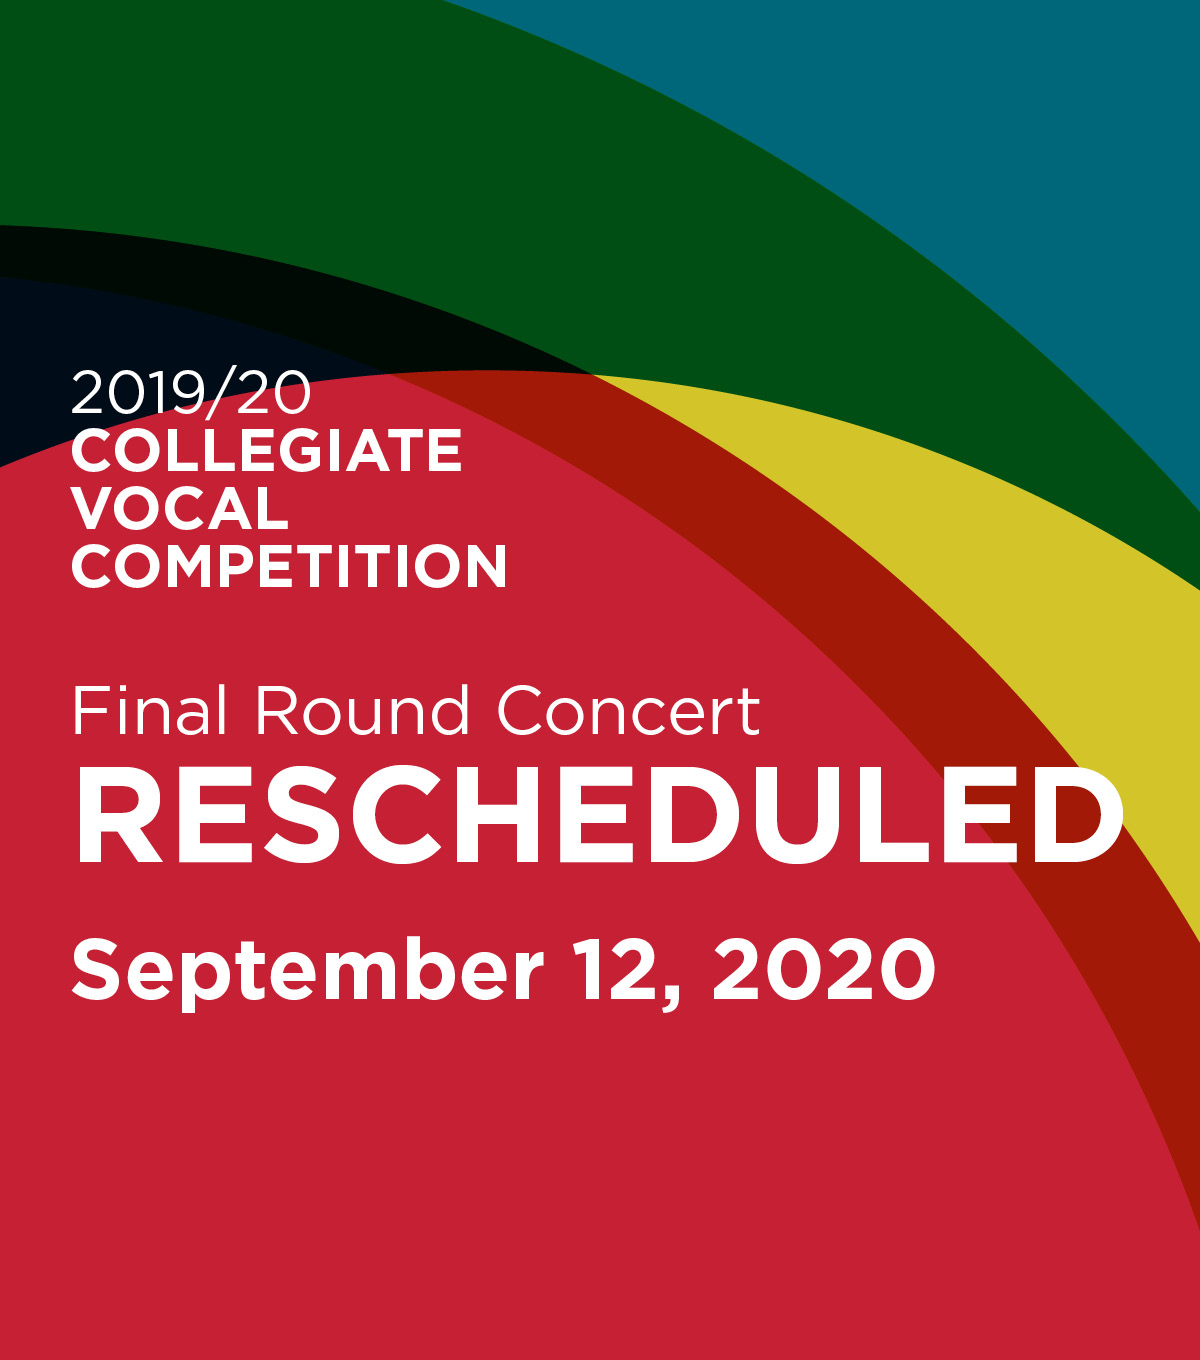 2019/20 Collegiate Vocal Competition. Final Round Concert Rescheduled. September 12, 2020. Learn More.